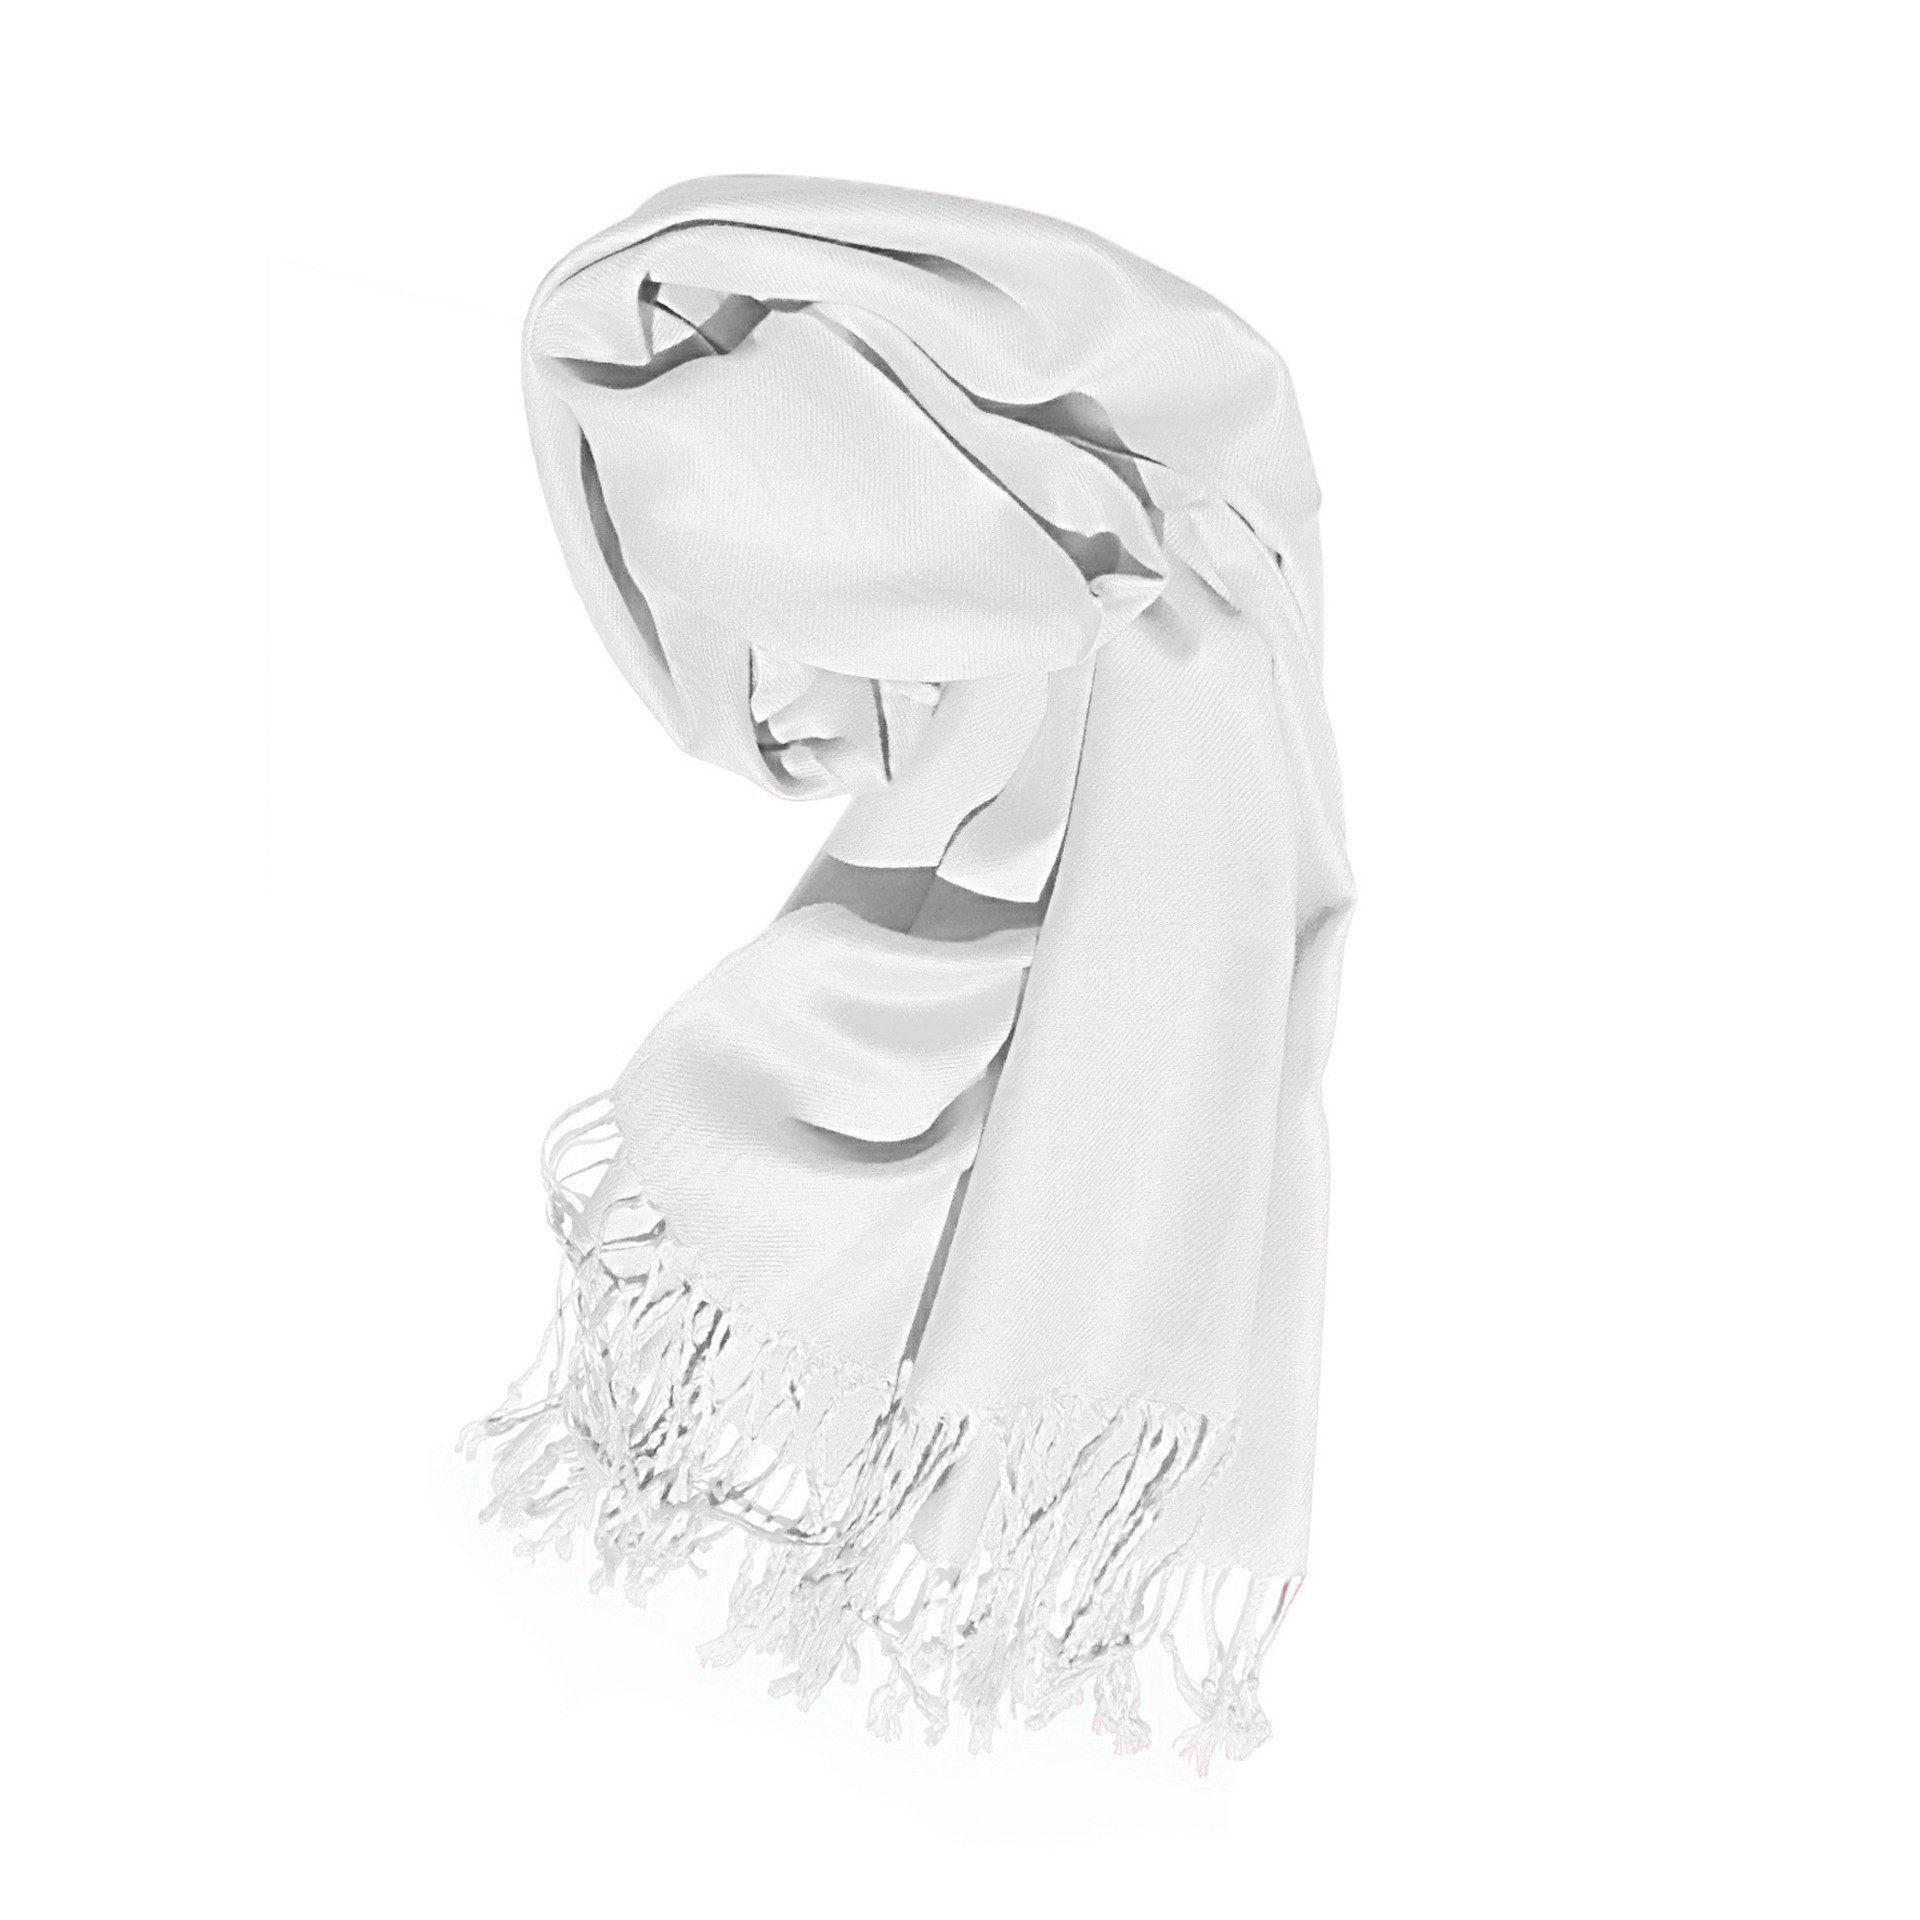 Top Personalized Wide White Pashmina Shawl Colorful Scarf Scarves Women Personal Customized Embroidering Best Unique Fun Great College Nursing Gift Idea Her Wife Nurse 2018